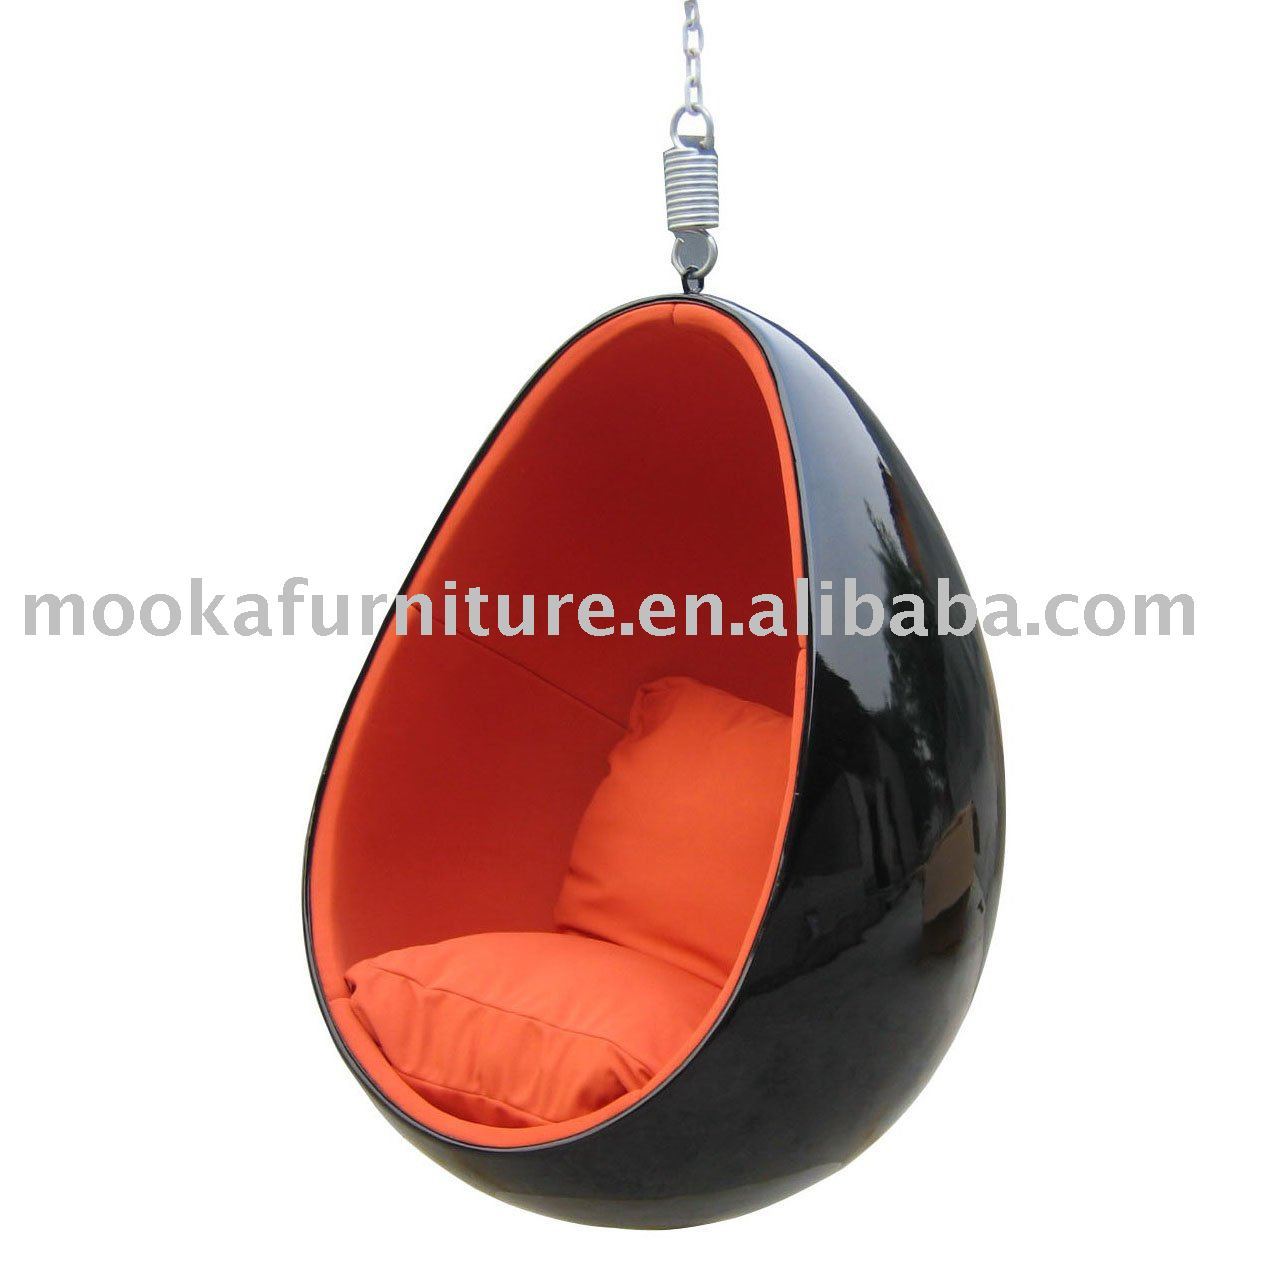 Egg Hanging Chair Ikea 5 Popular Hanging Chair Ikea Modern